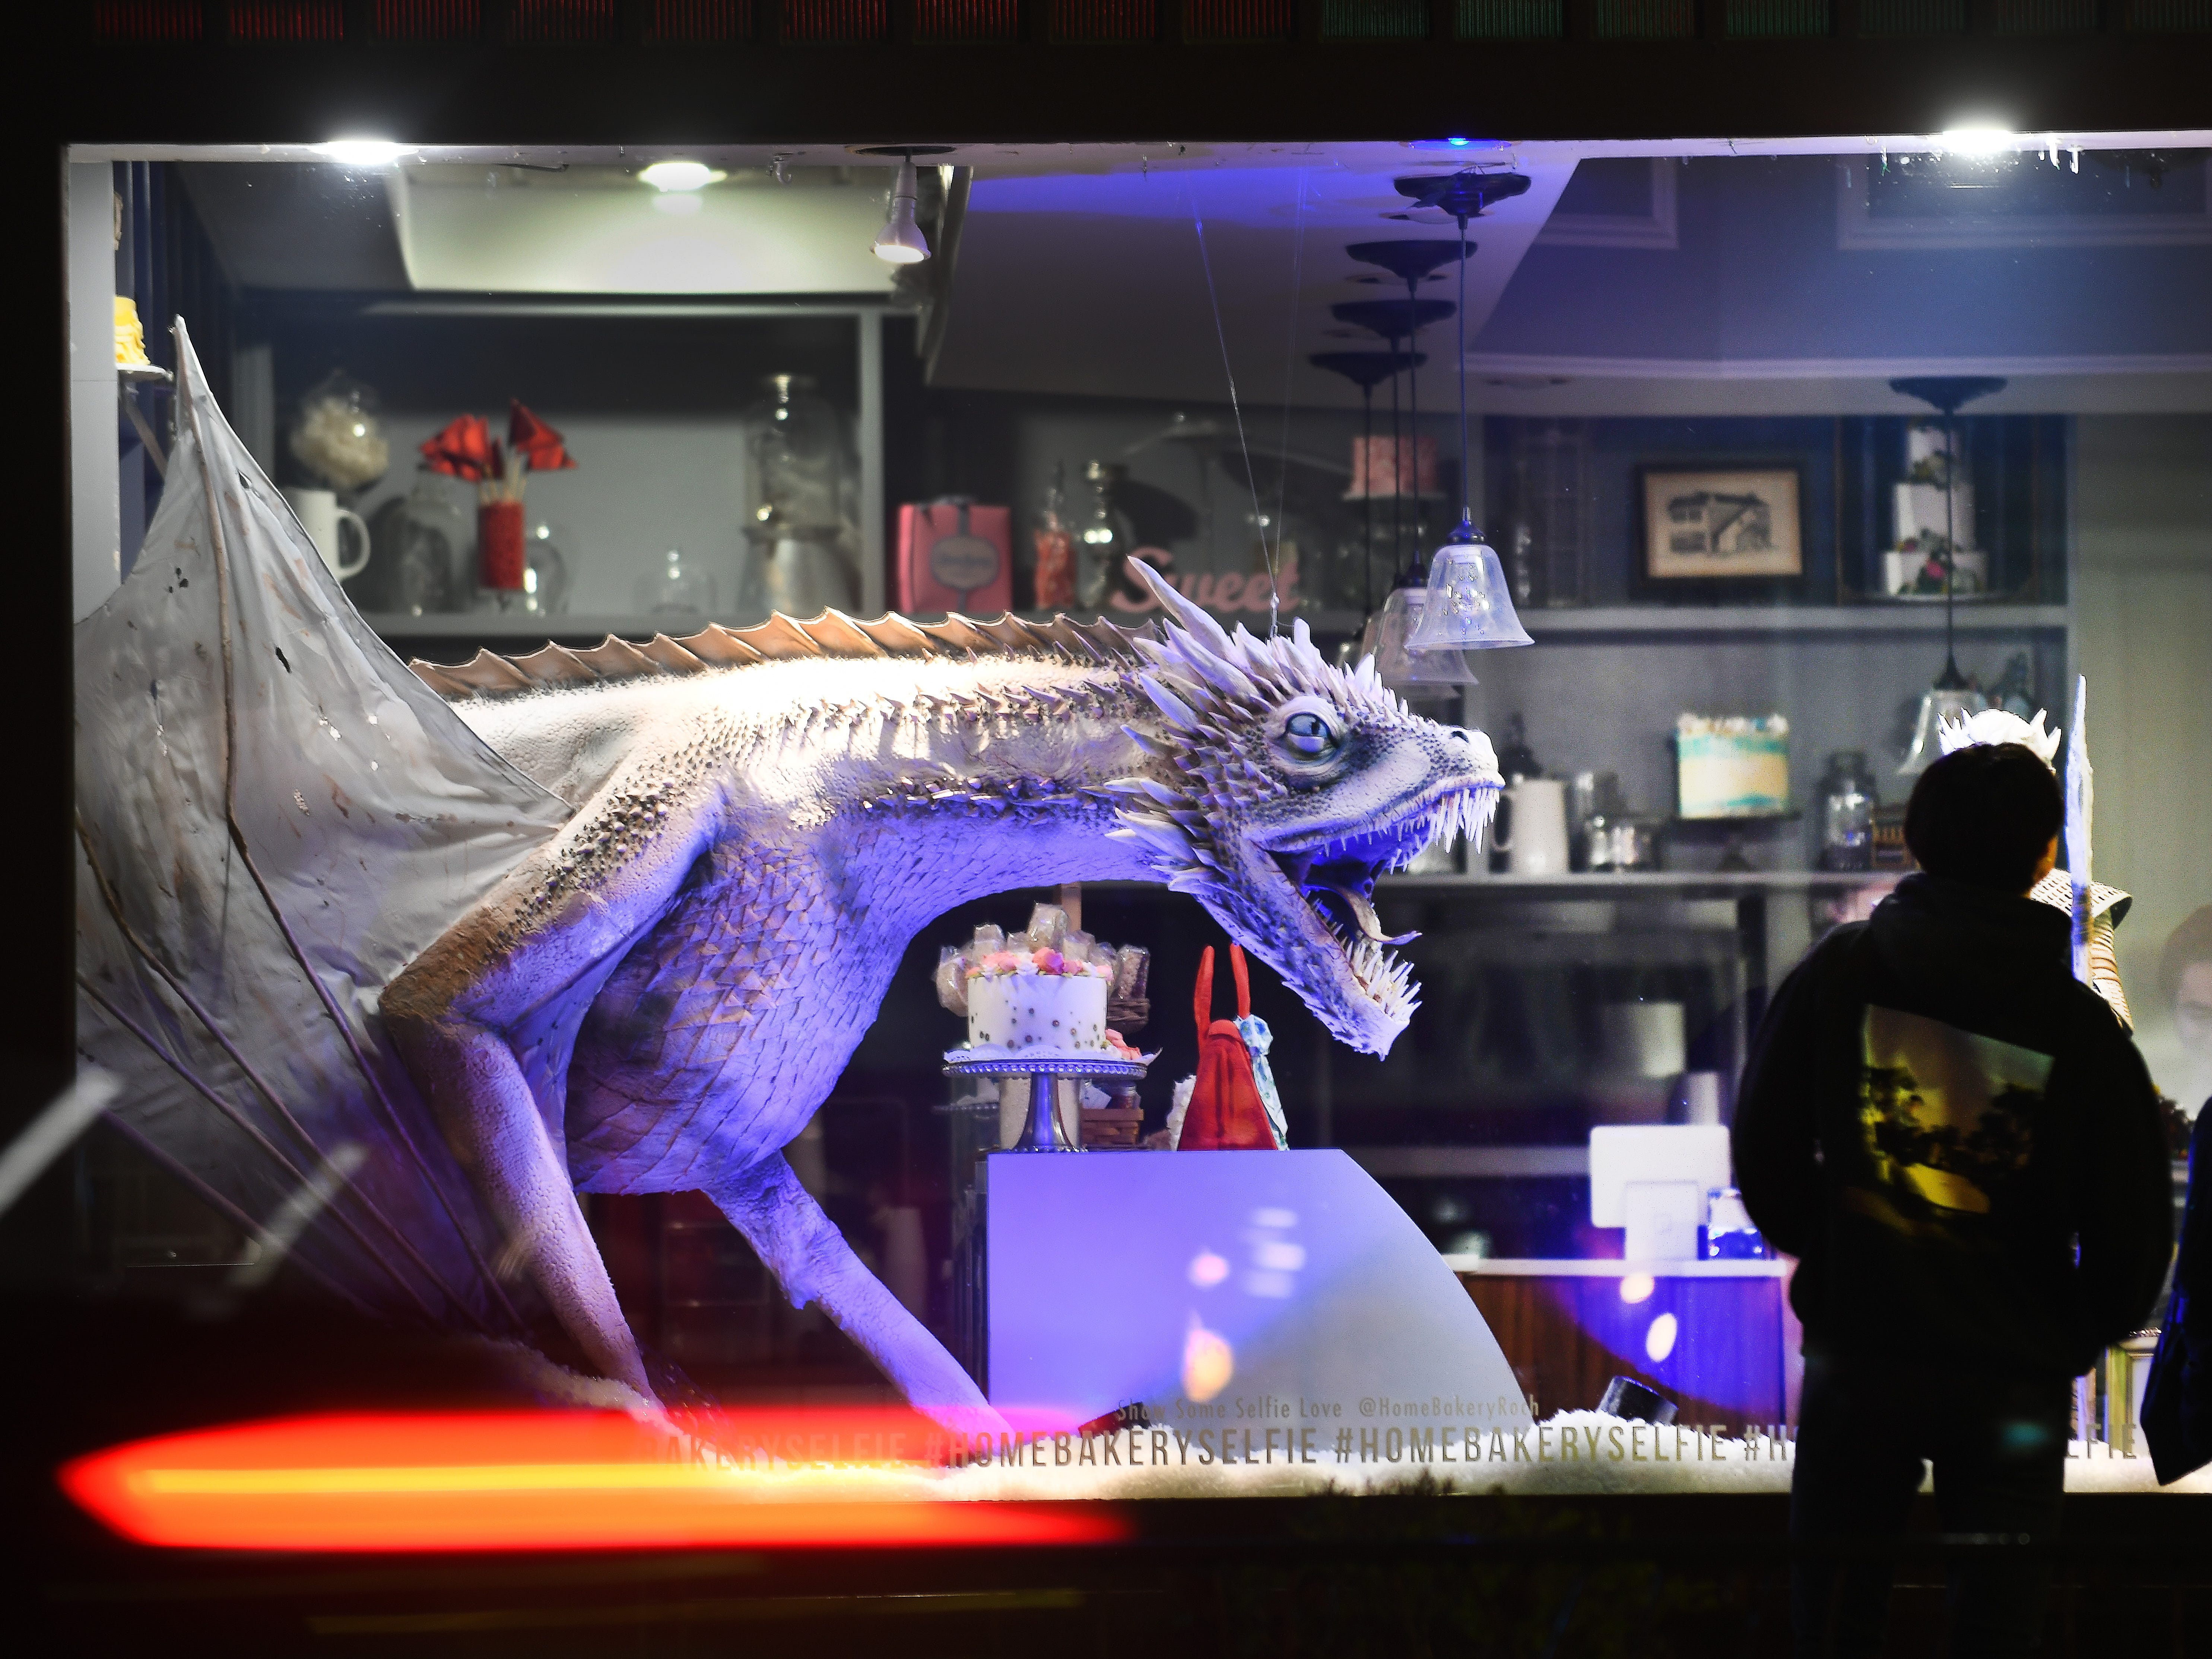 The ice dragon Viserion cake, measuring more than six feet long, intimidates   'Game of Thrones' fans, who are traveling from across Michigan to see the window display of The Home Bakery in Rochester.